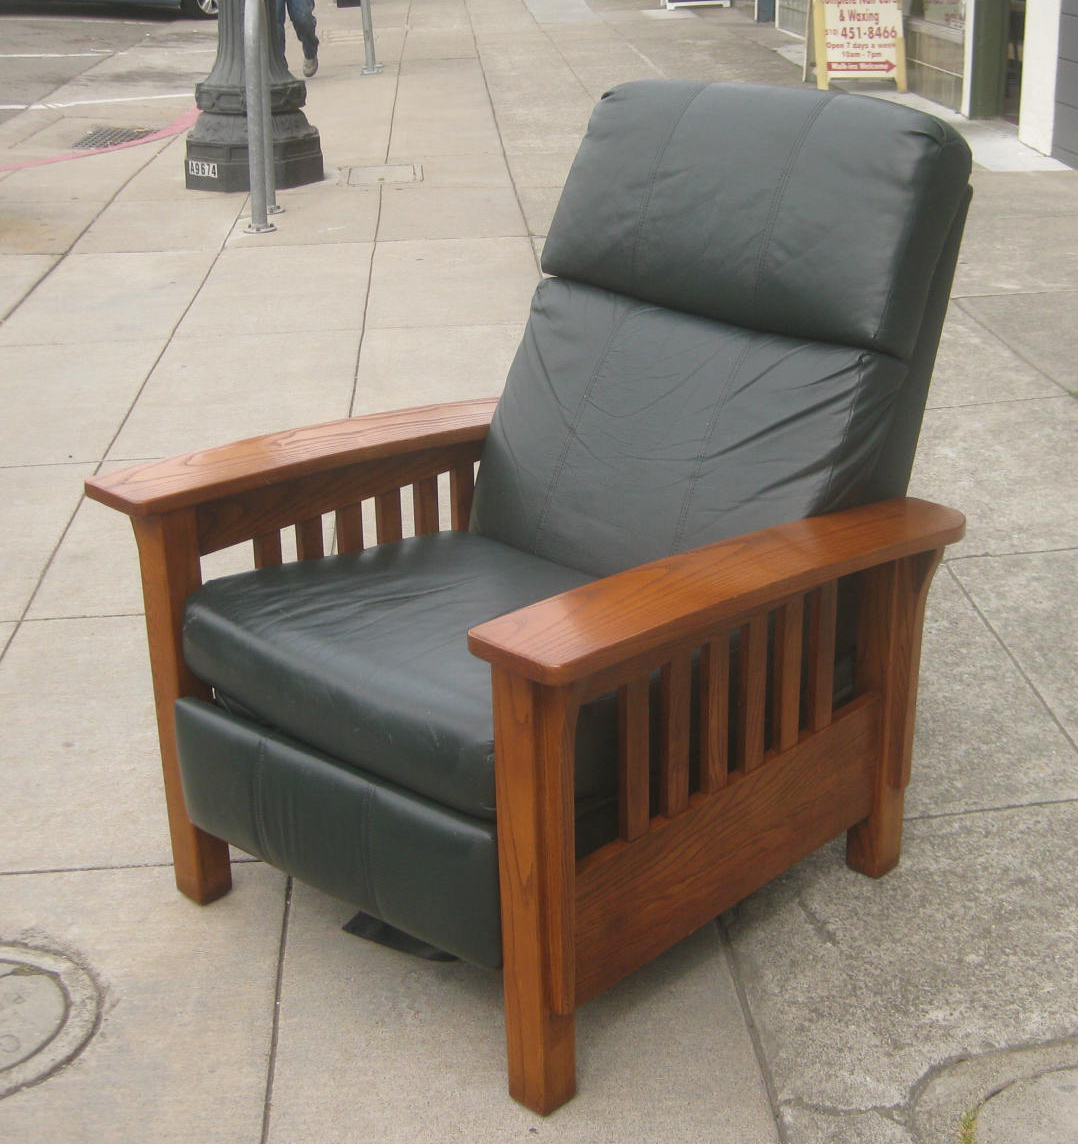 Mission Style Chairs For Sale: UHURU FURNITURE & COLLECTIBLES: SOLD